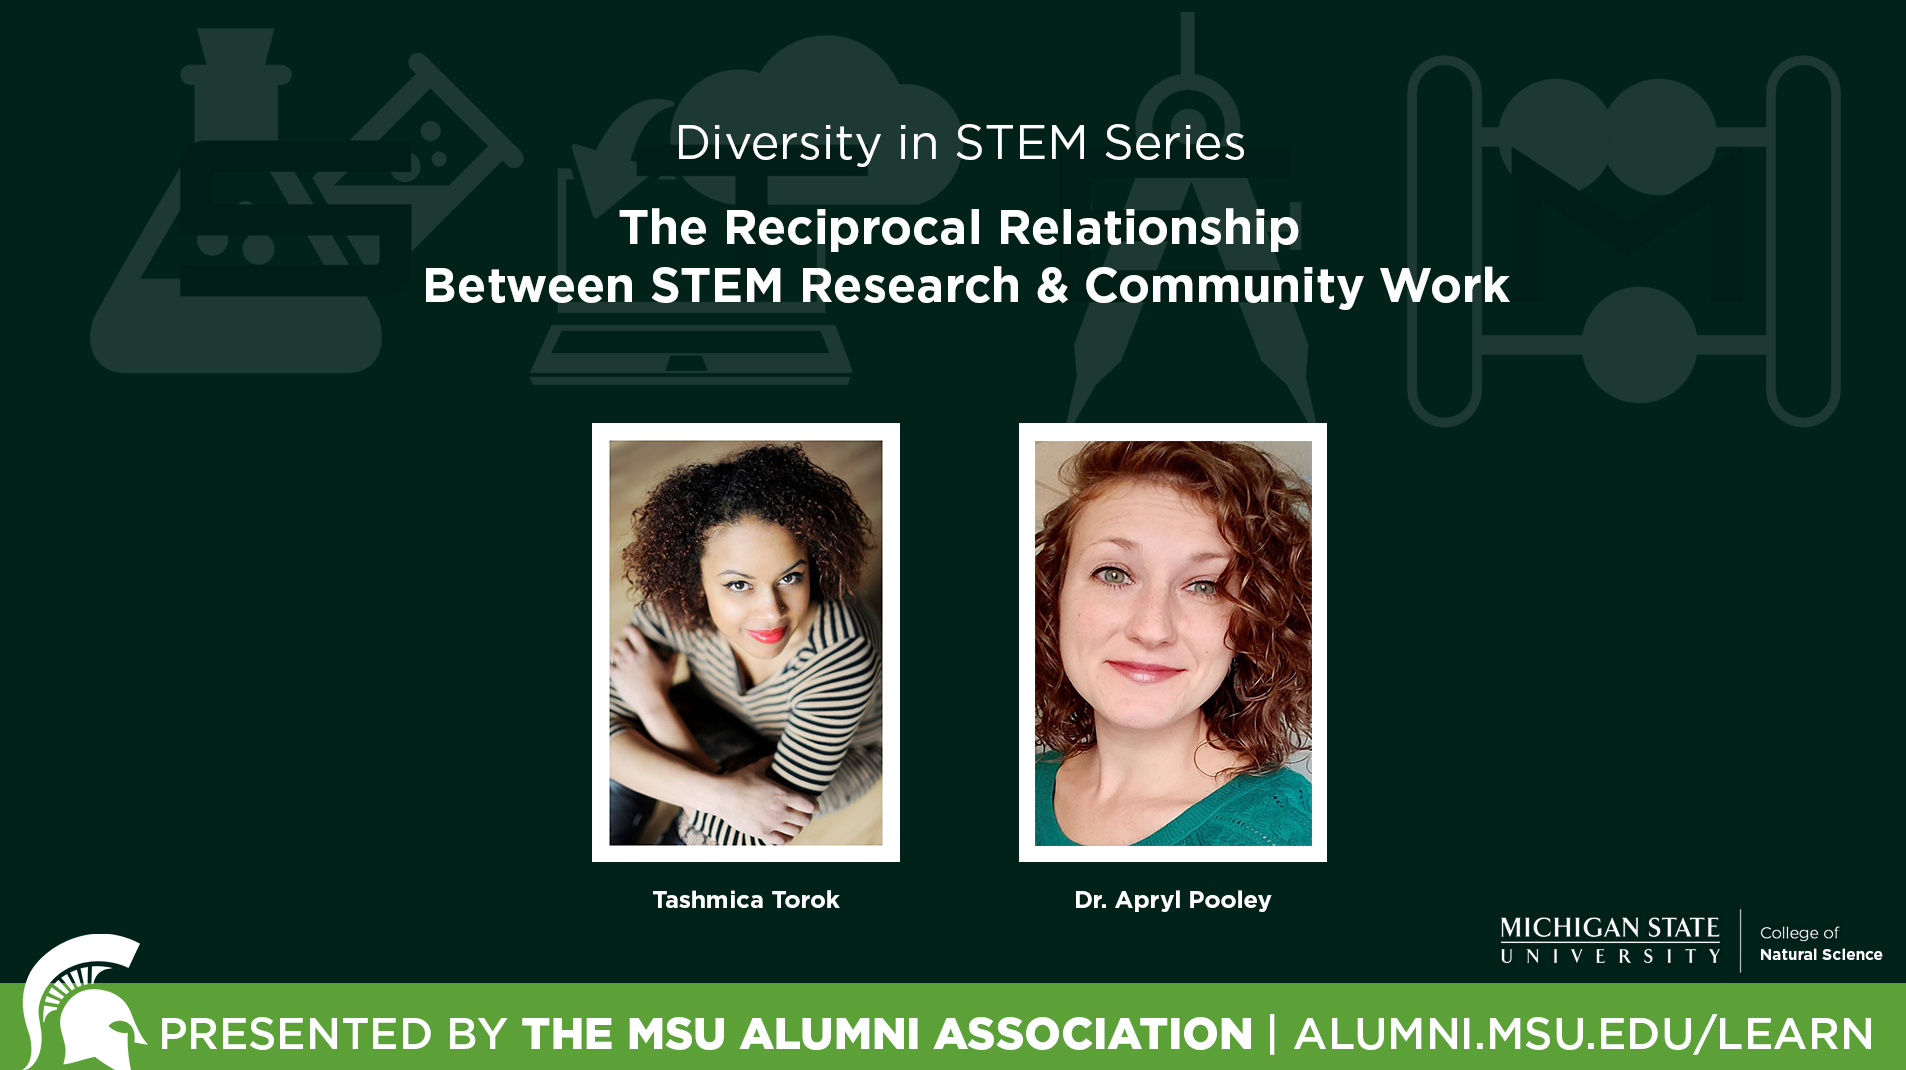 livestream cover image for Diversity In STEM Series | The Reciprocal Relationship Between STEM Research & Community Work